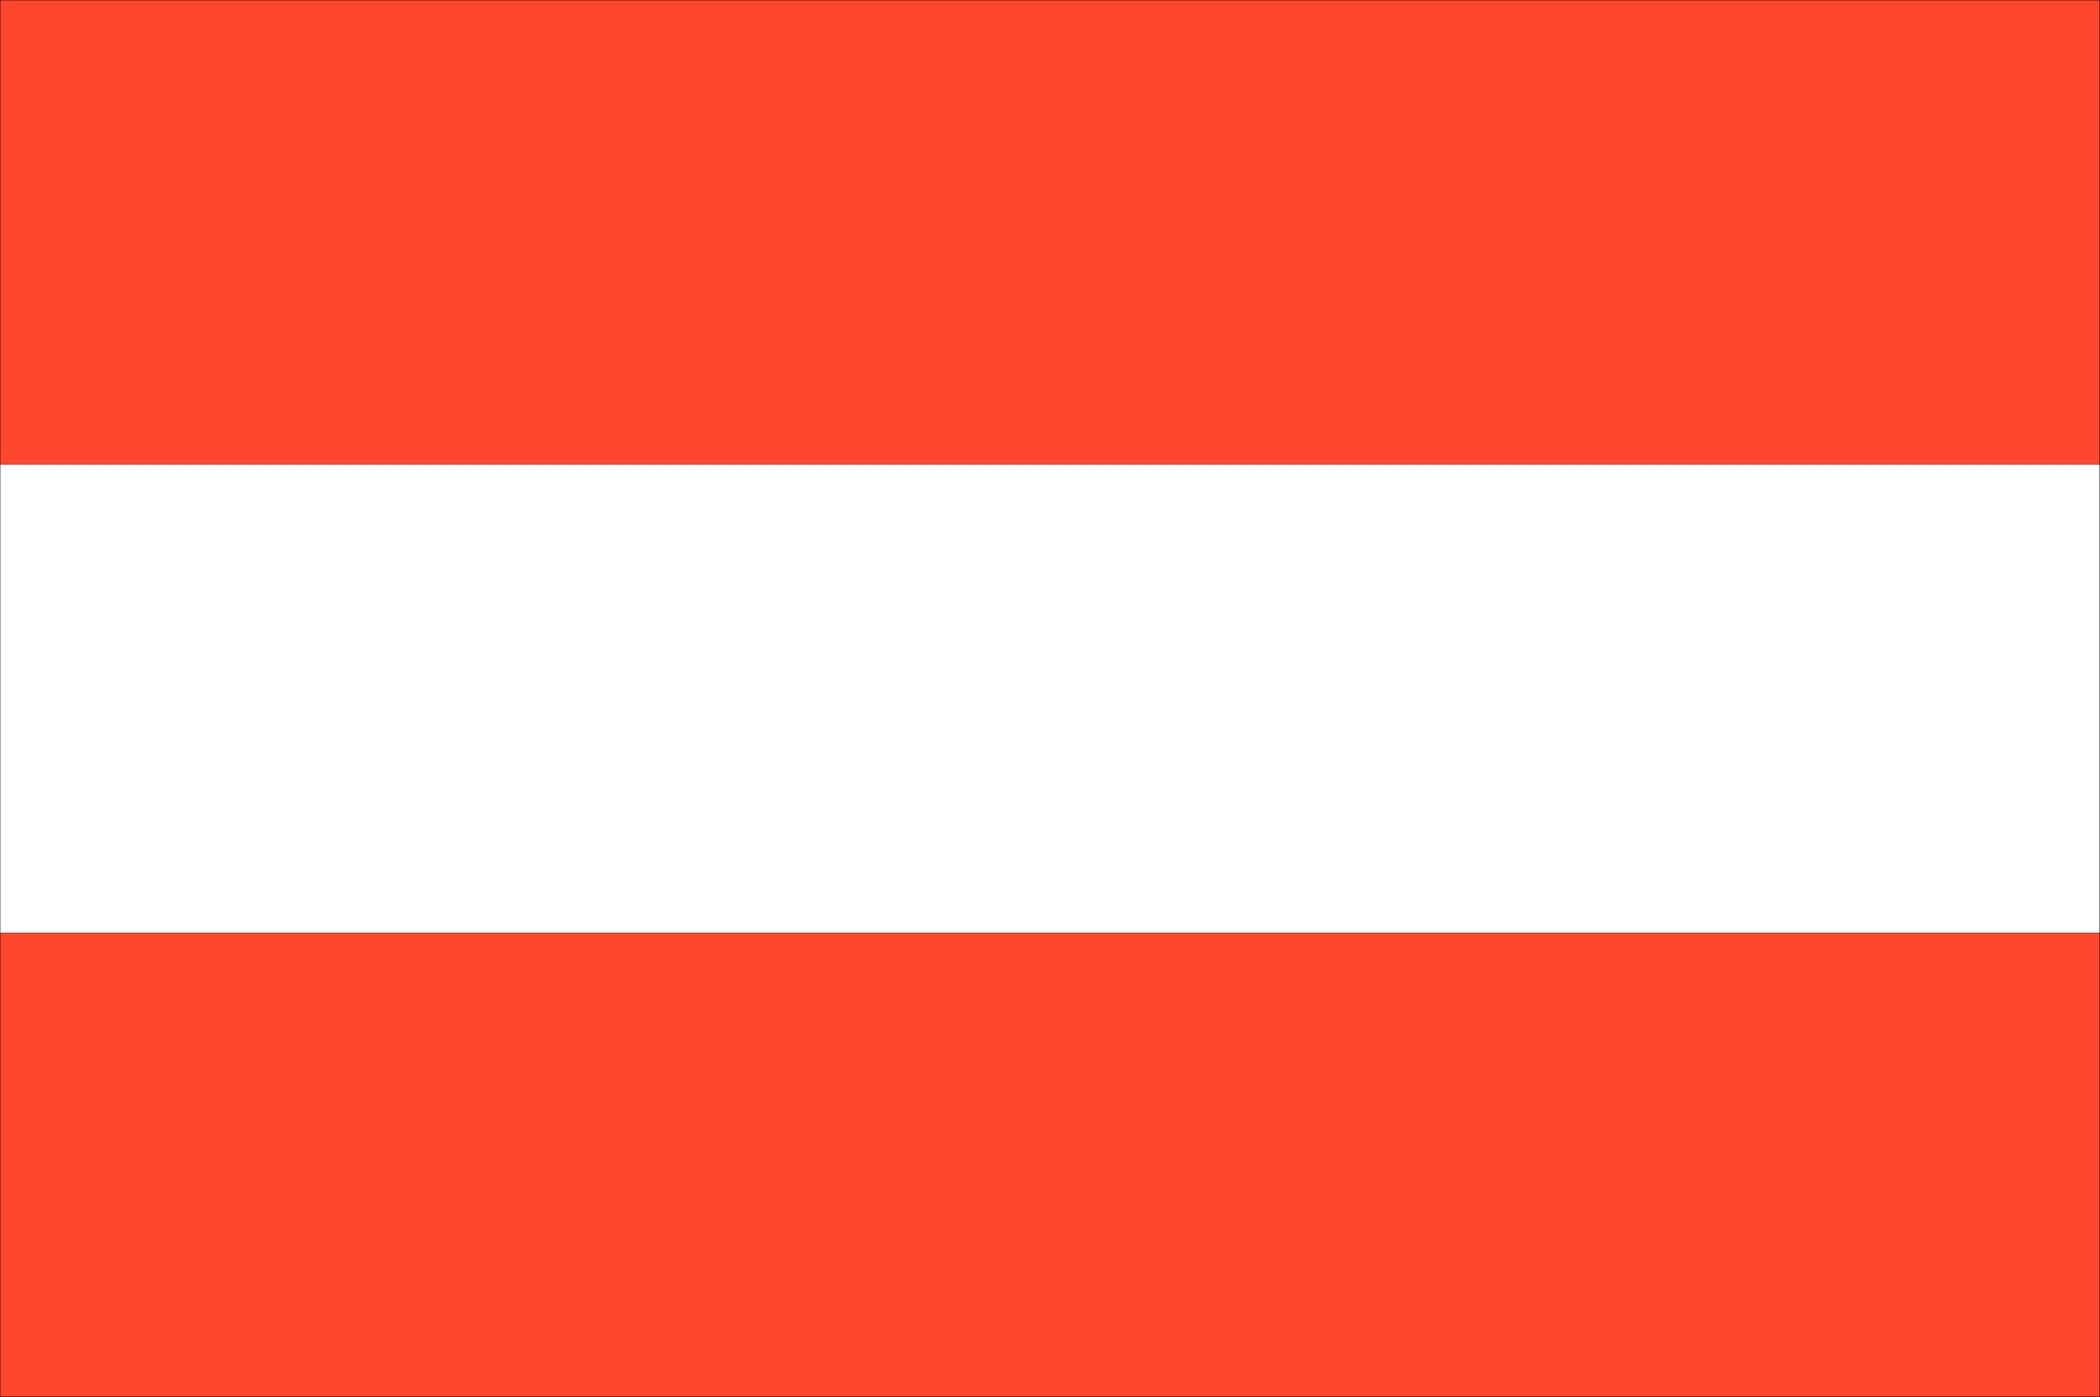 Austria Flag [EPS] Vector EPS Free Download, Logo, Icons, Brand Emblems